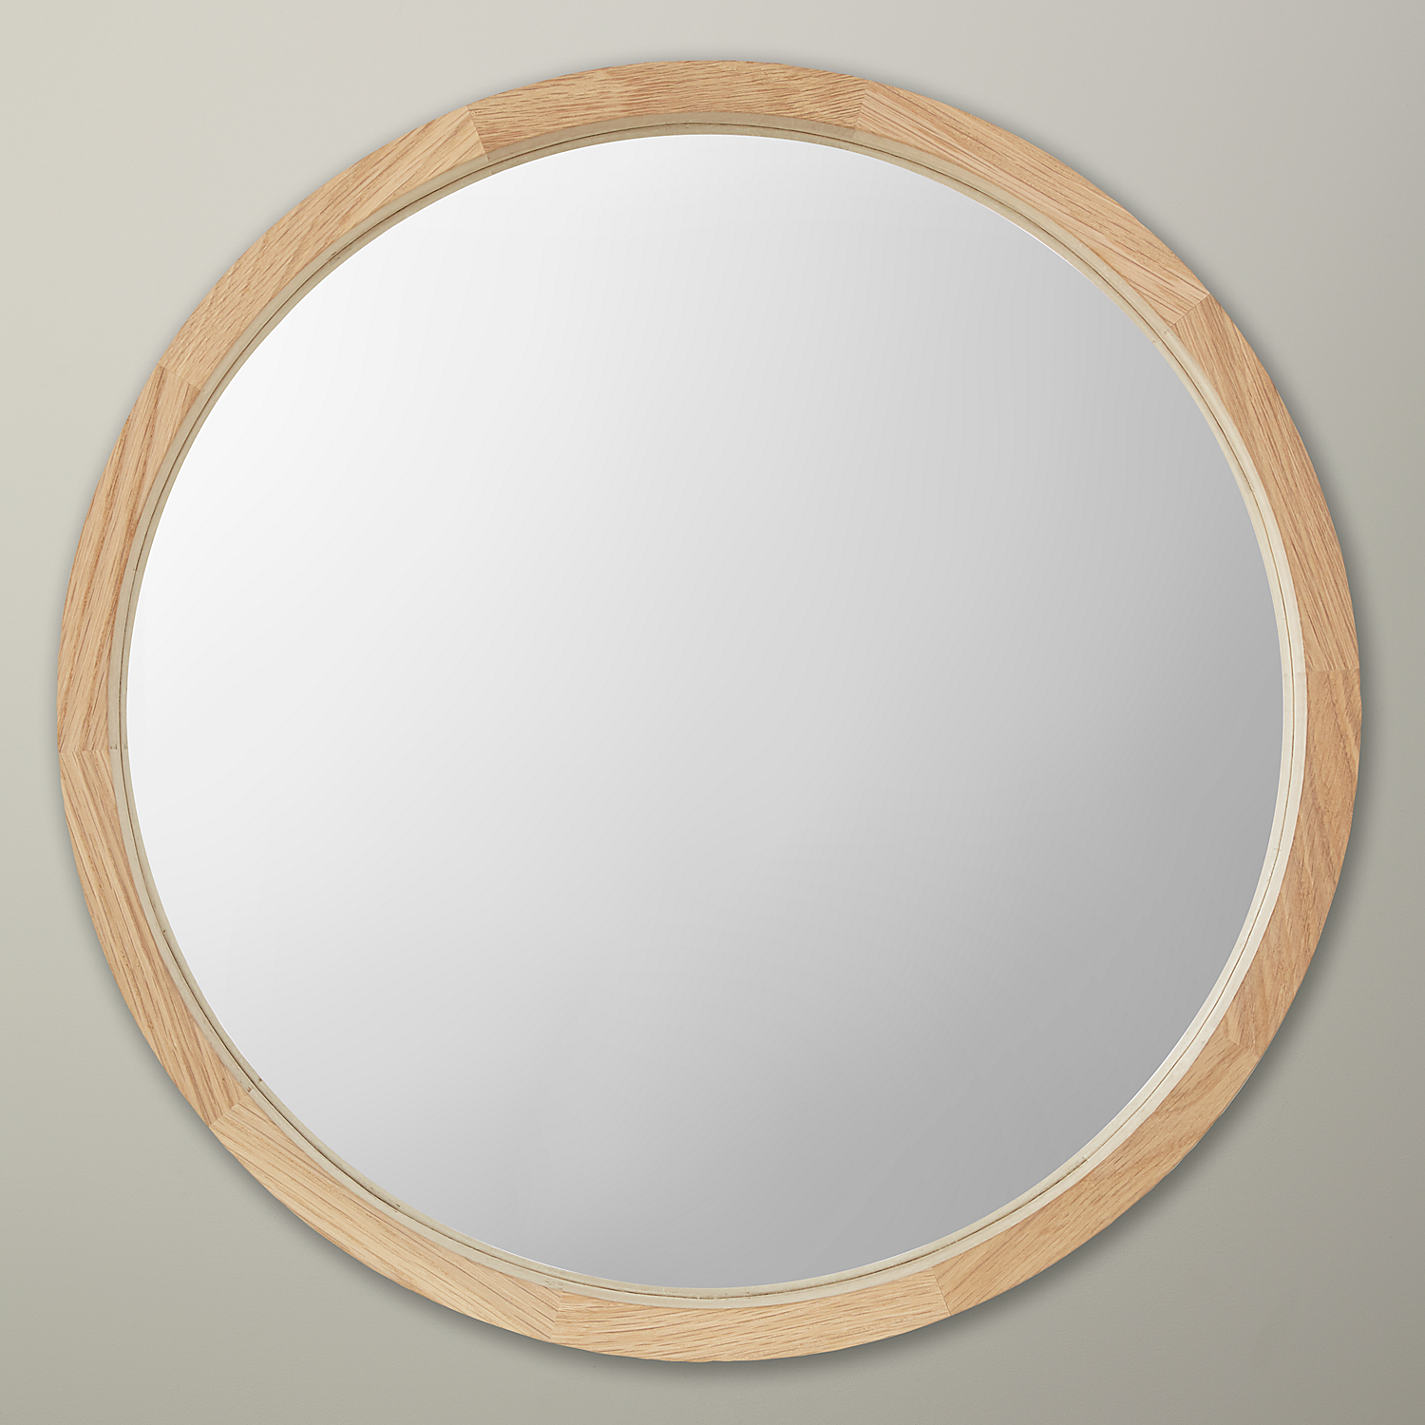 Round mirrors frameless wall mirrors sale wall mirrors for Round mirror